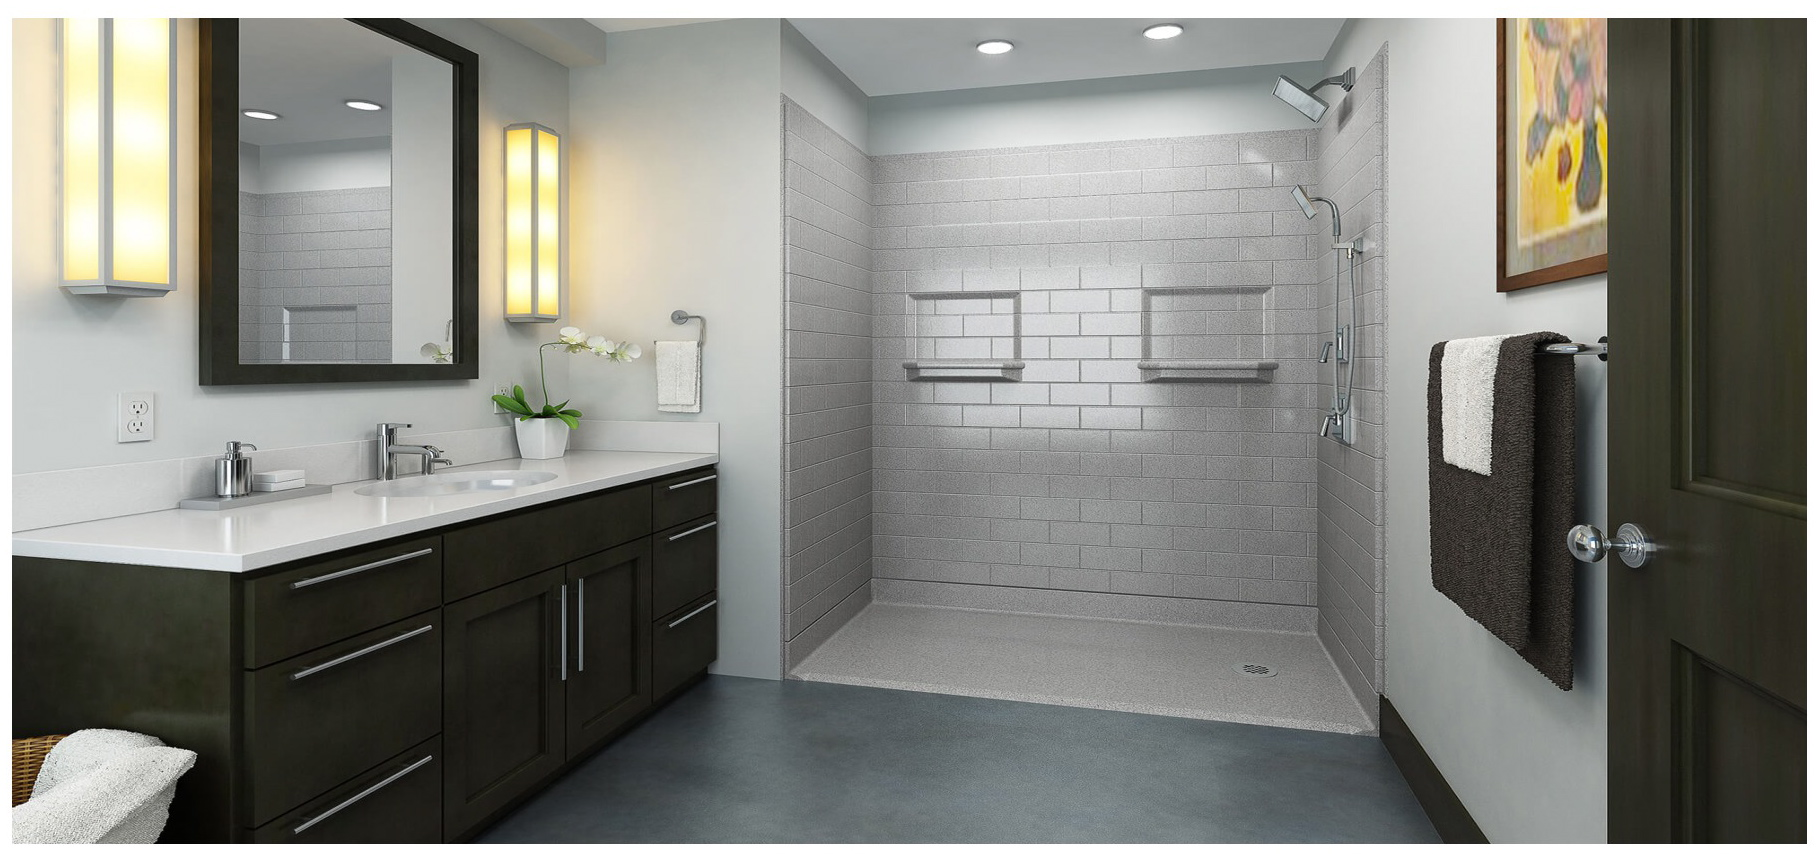 Handicap Accessible Barrier Free Showers for Residential Applications